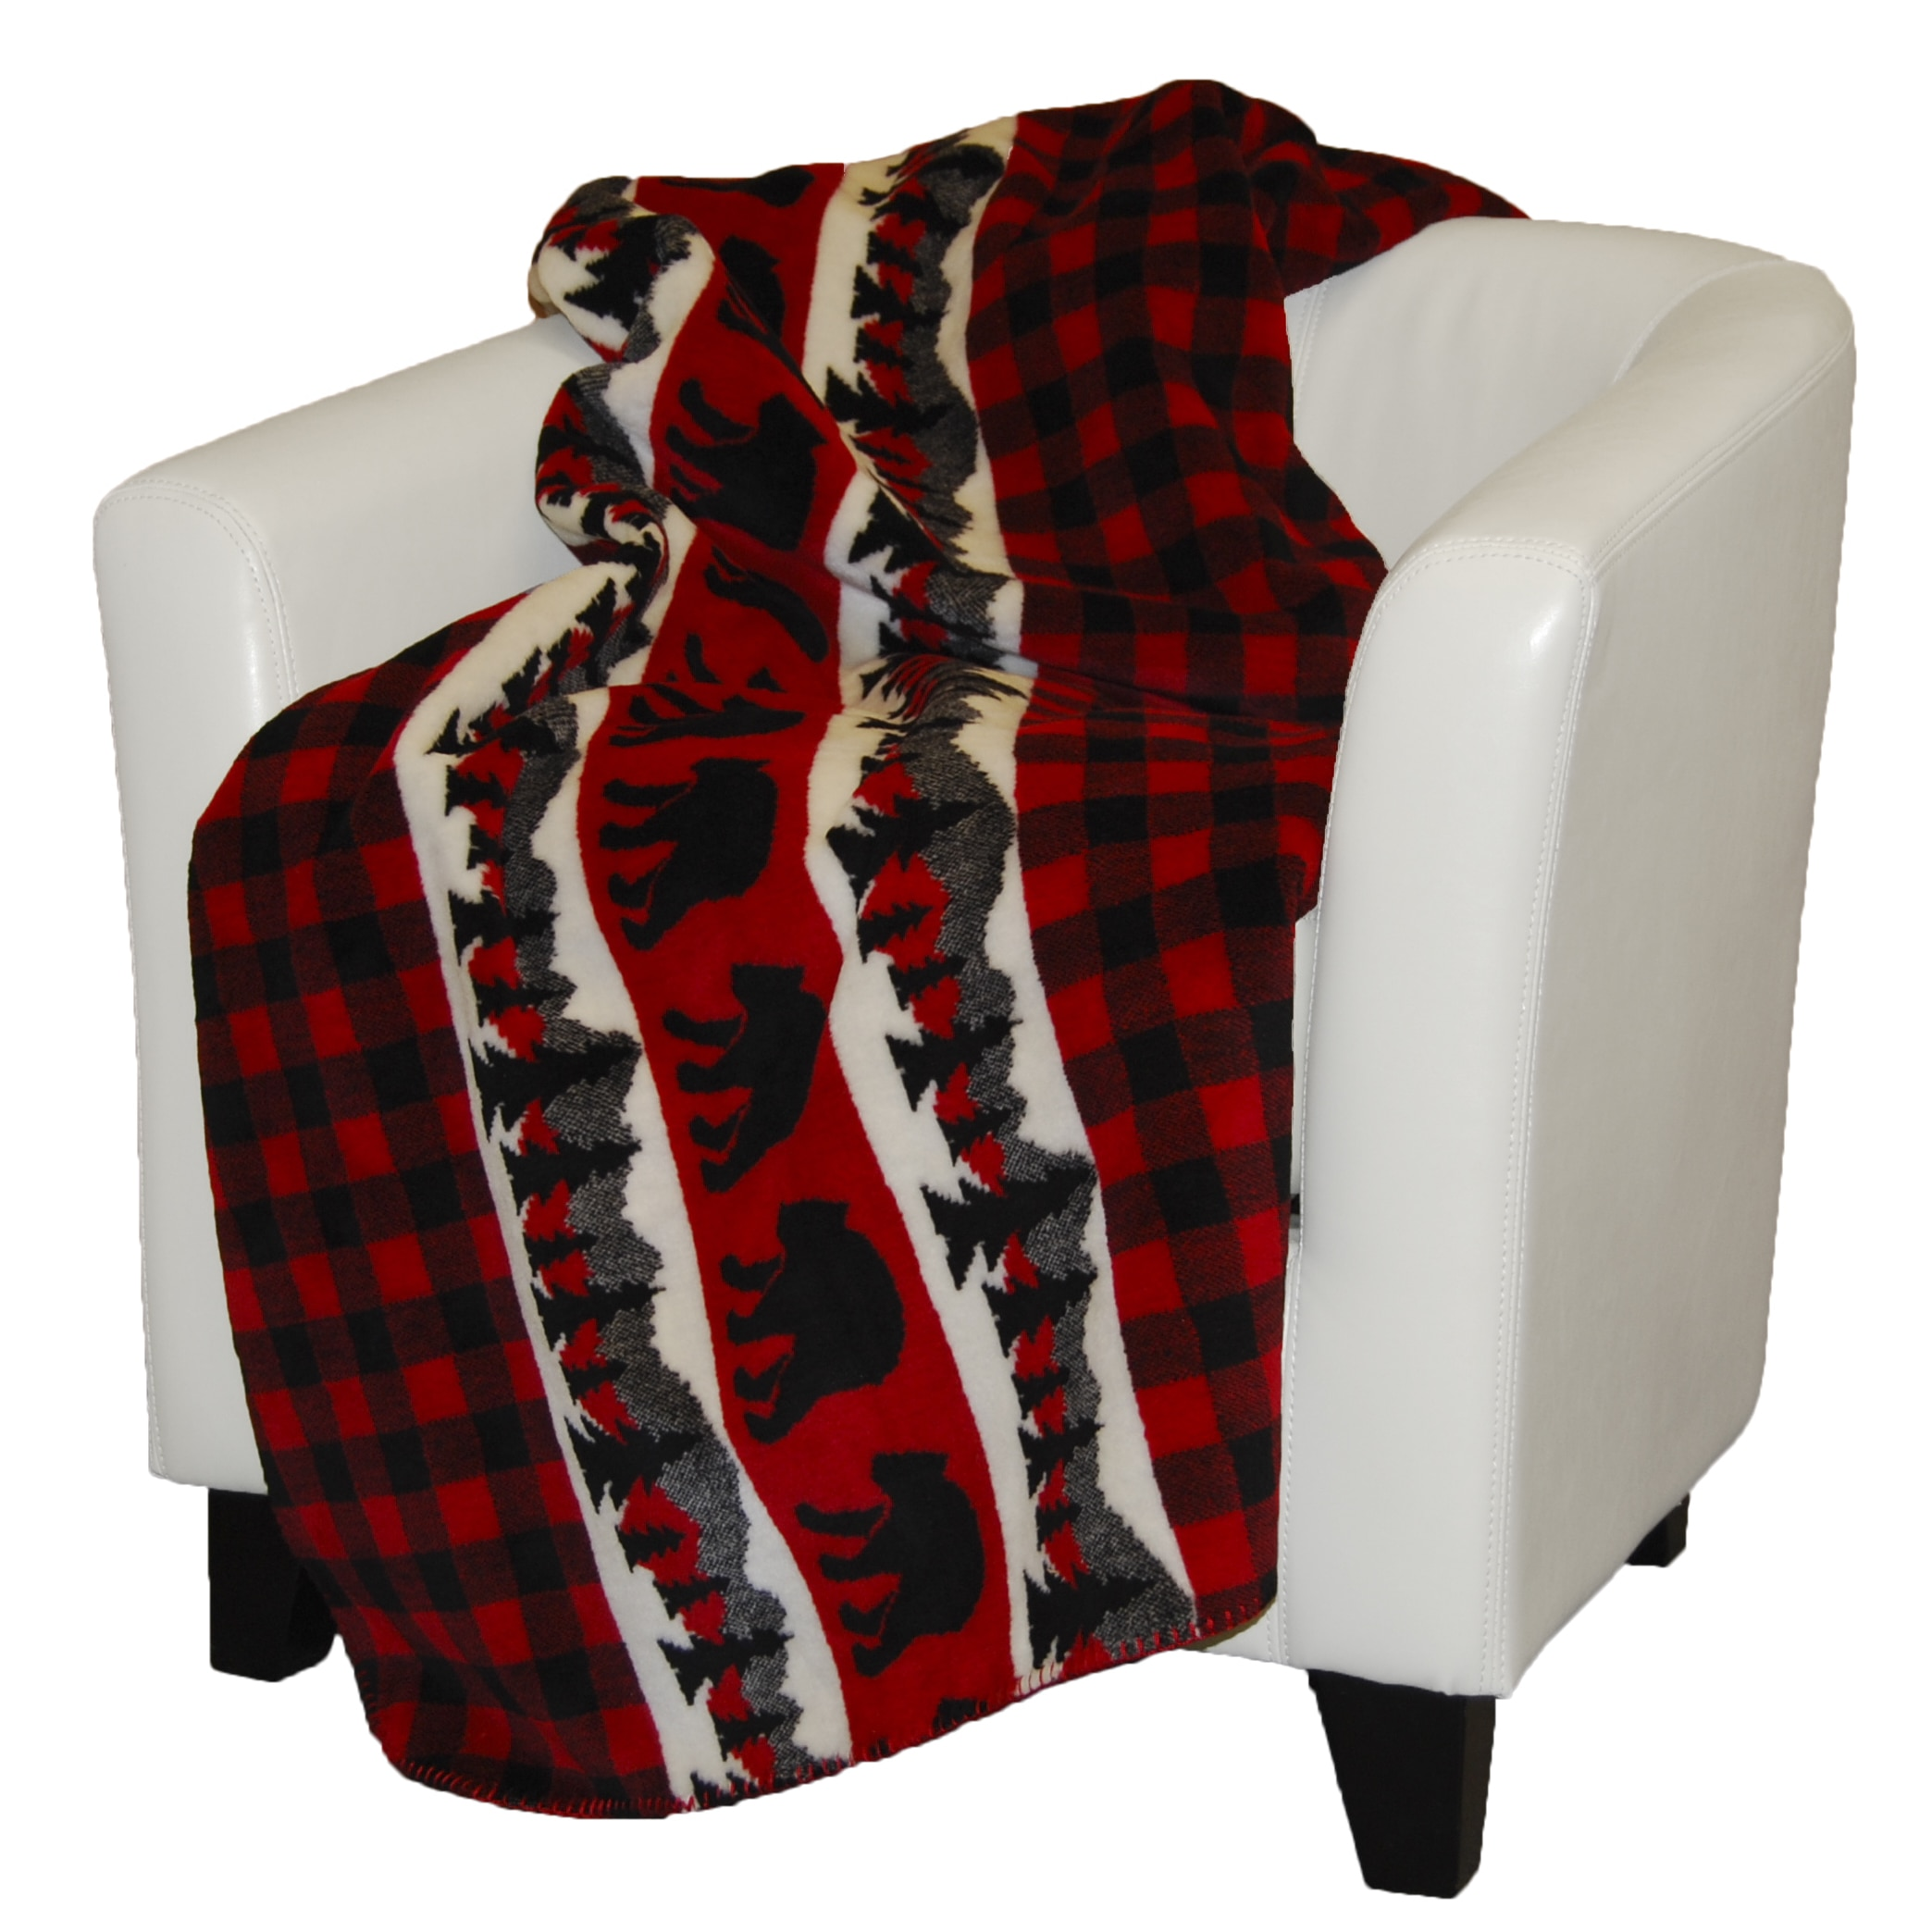 Denali Bear Plaid Throw Blanket